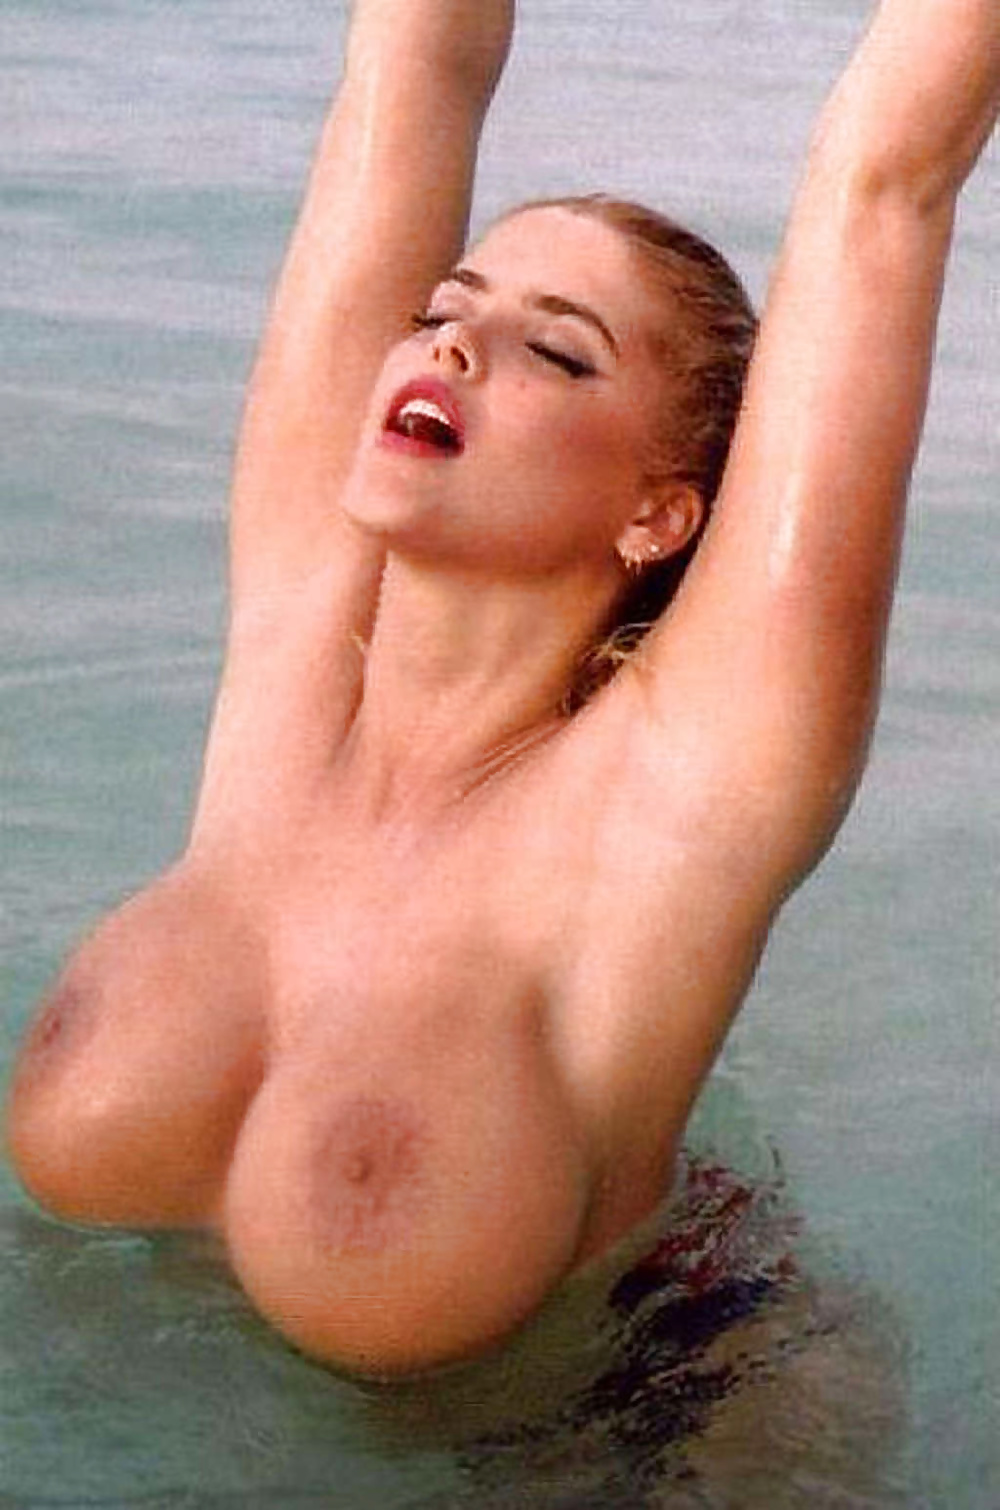 Anna nicole smith handjob, naked hung african men